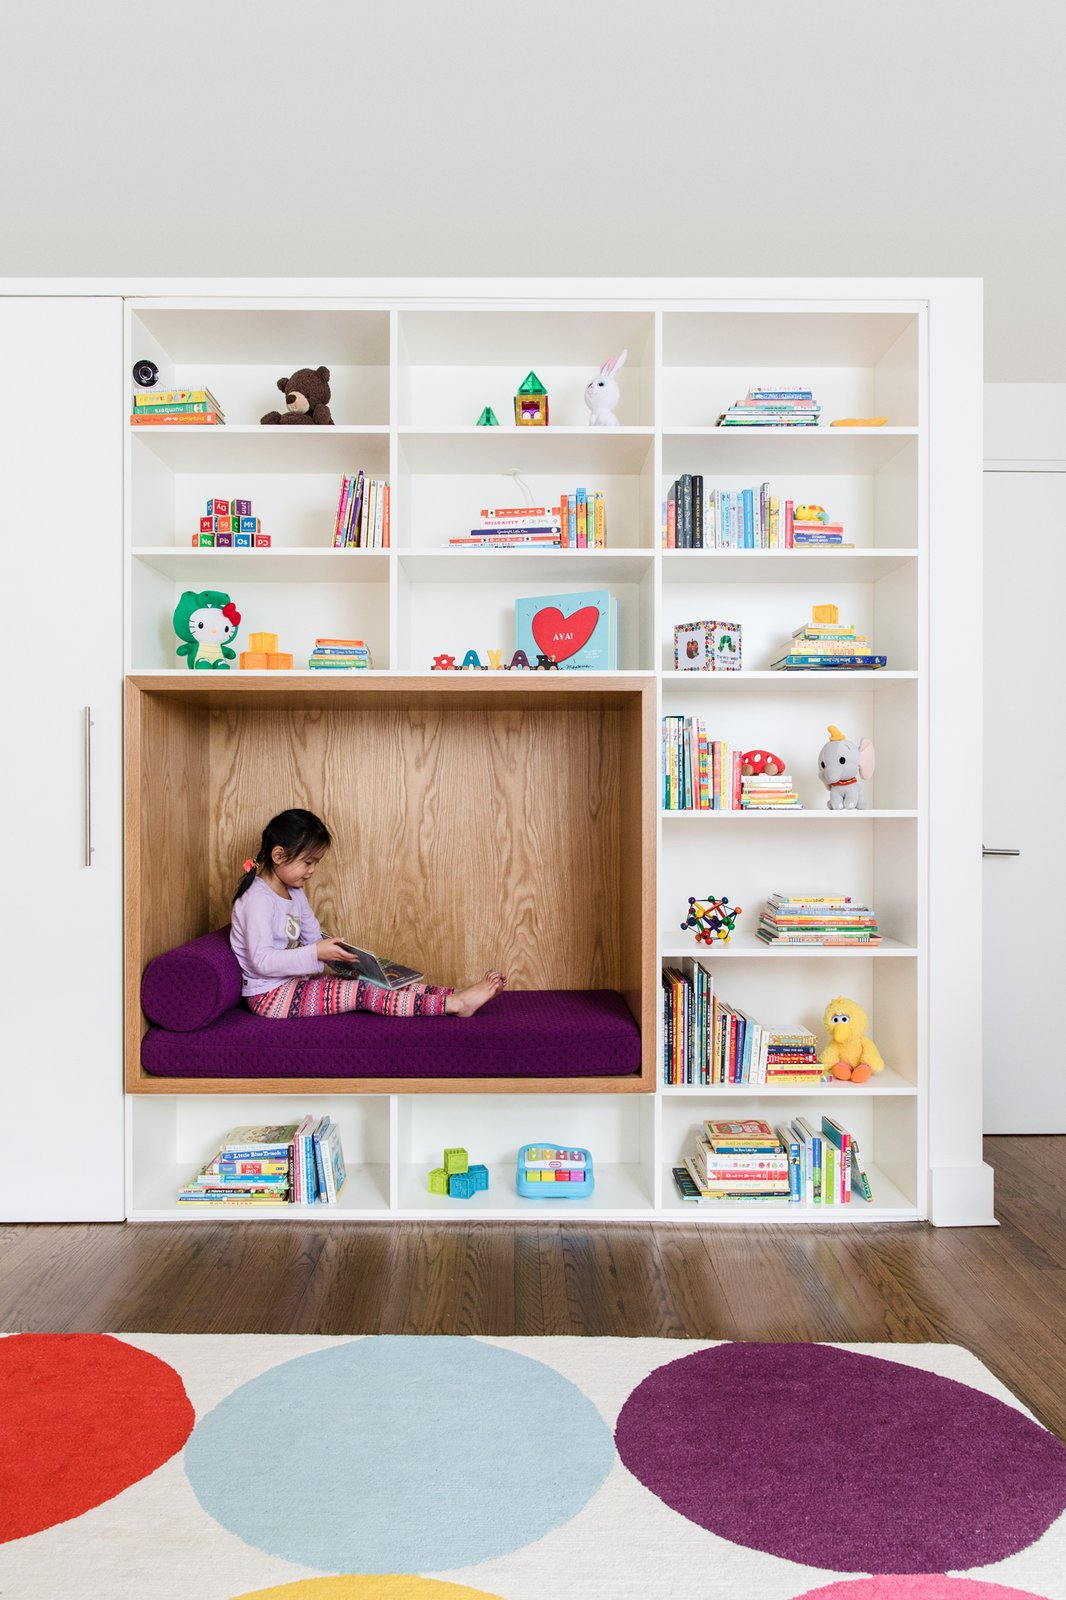 Kids Room, Shelves, Bookcase, Playroom Room Type, Bench, Toddler Age, Storage, Dark Hardwood Floor, Neutral Gender, Bedroom Room Type, and Rug Floor Child's bedroom with custom cabinetry and reading nook  Photos from 19 Cozy Nooks That Radiate Charm and Comfort